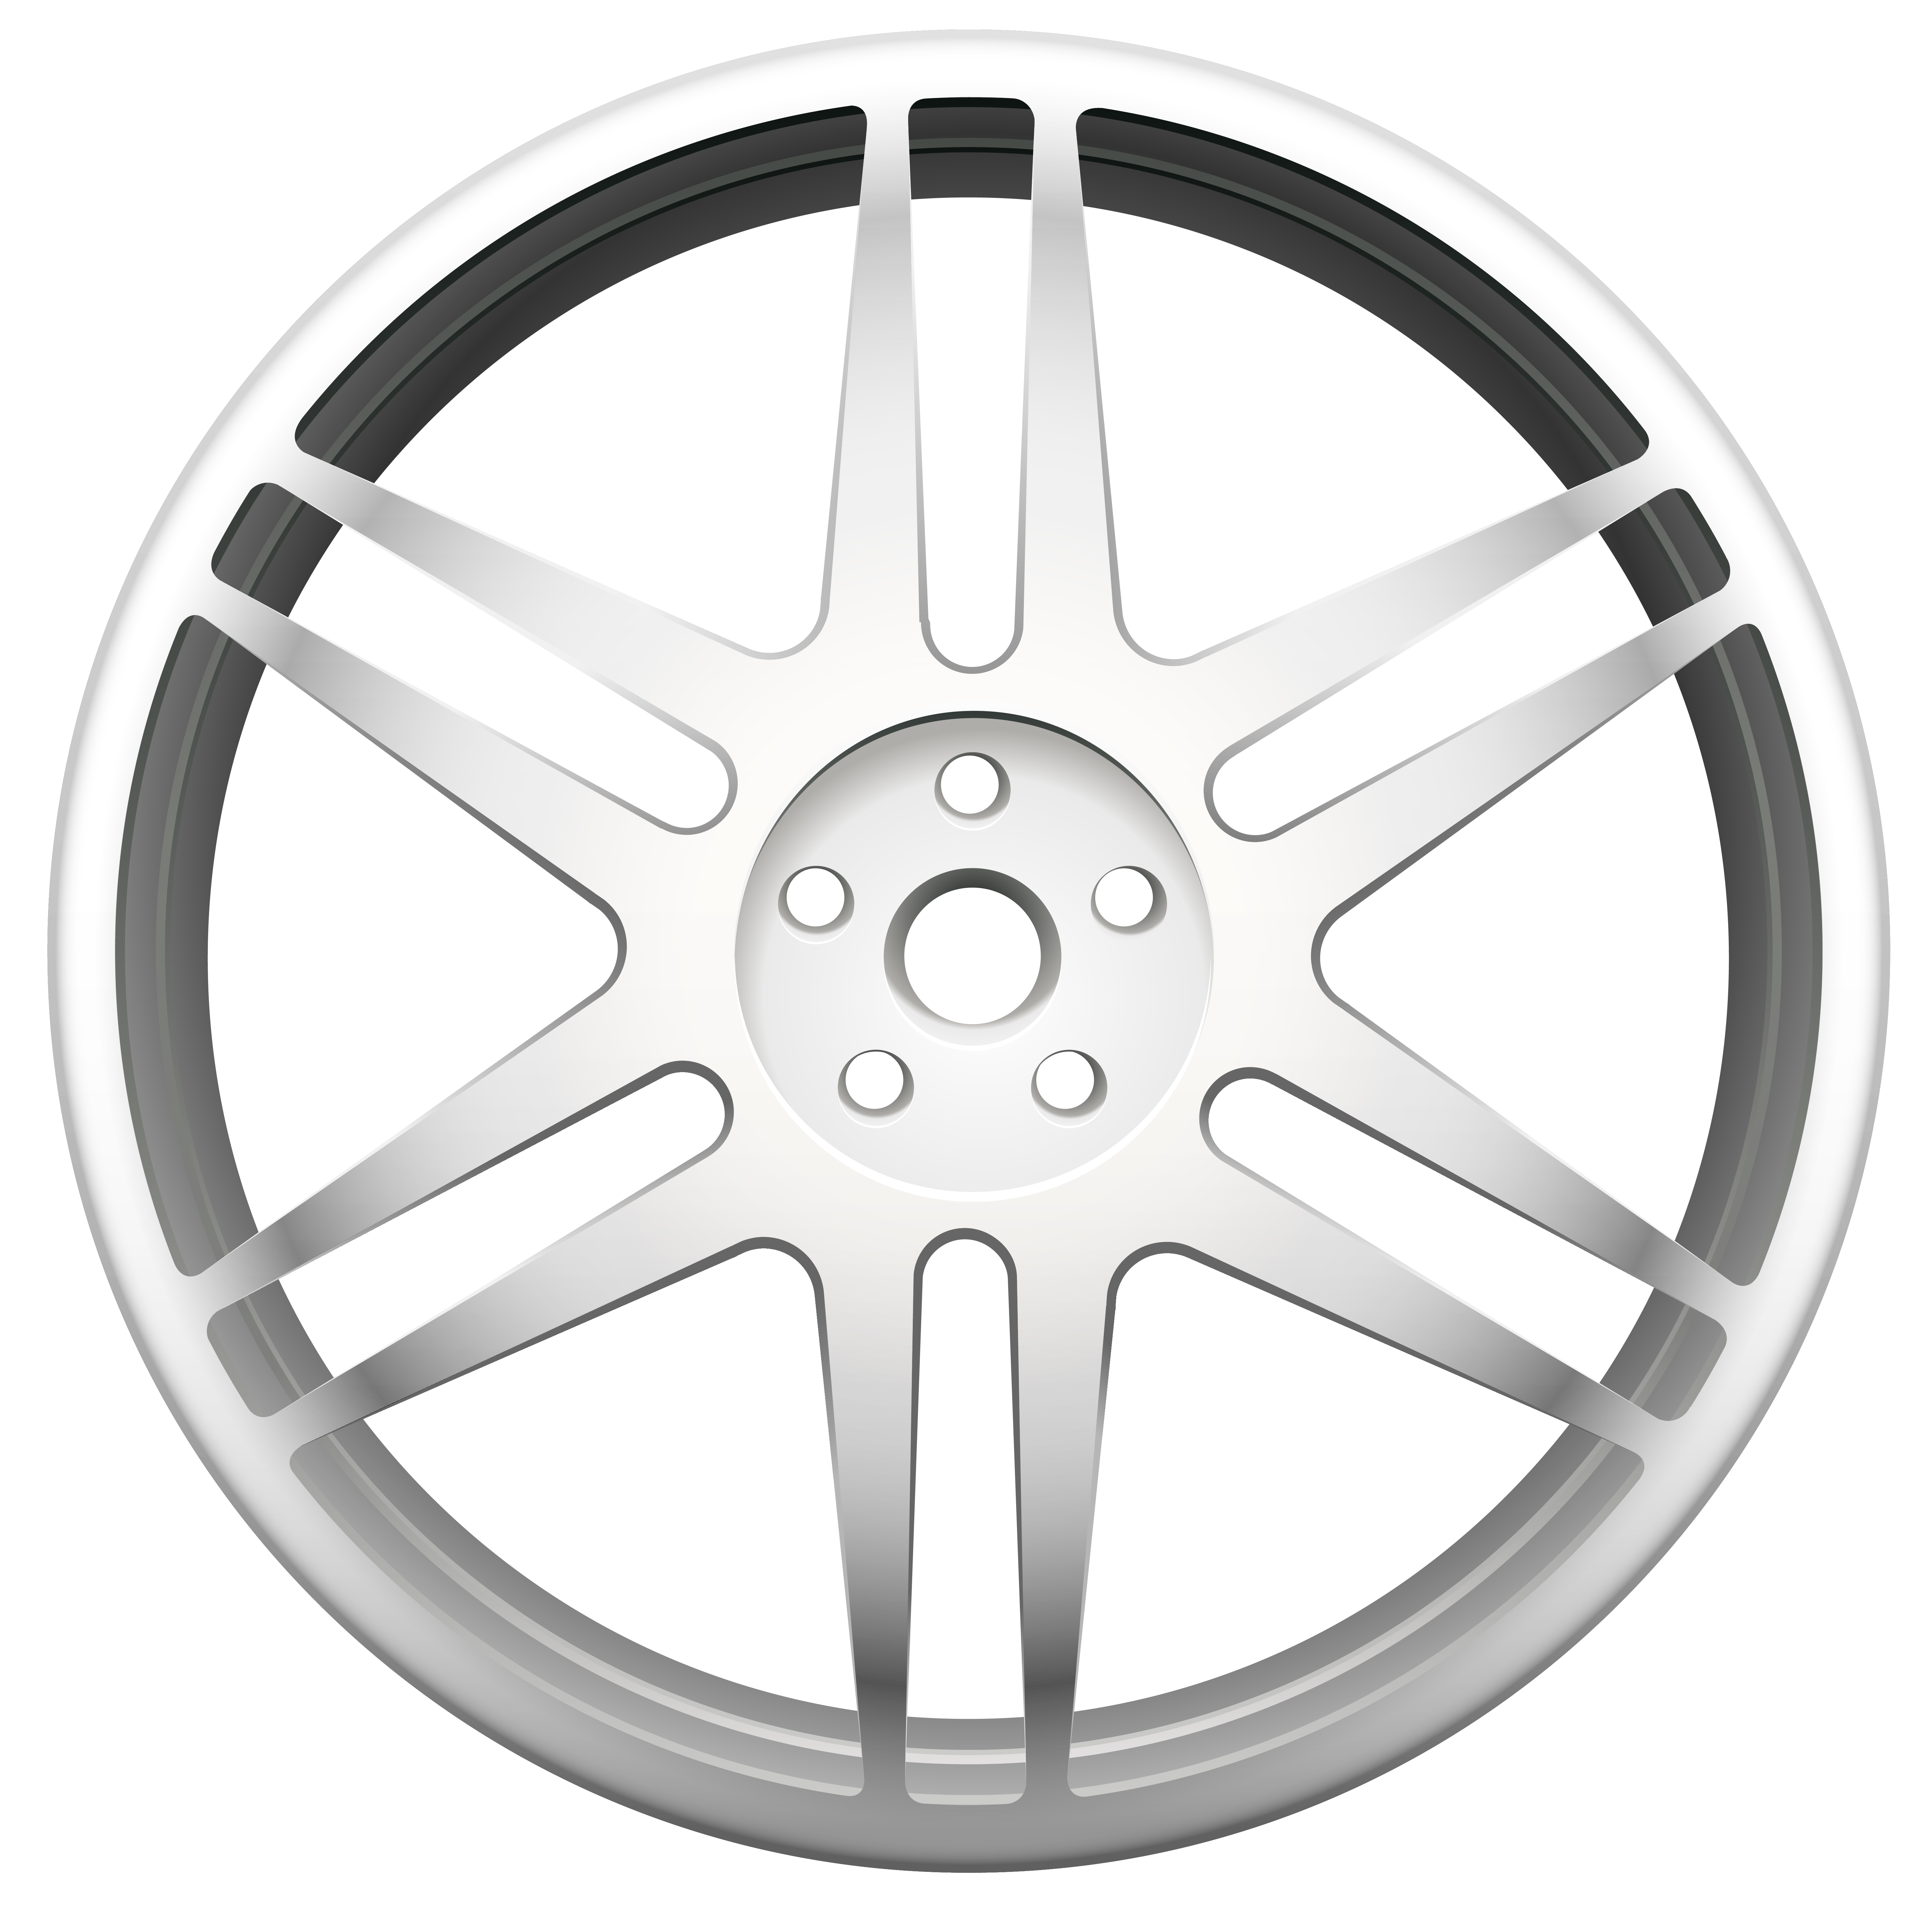 Car rim clipart graphic library stock Wheel Skin Cover PNG Clip Art - Best WEB Clipart graphic library stock